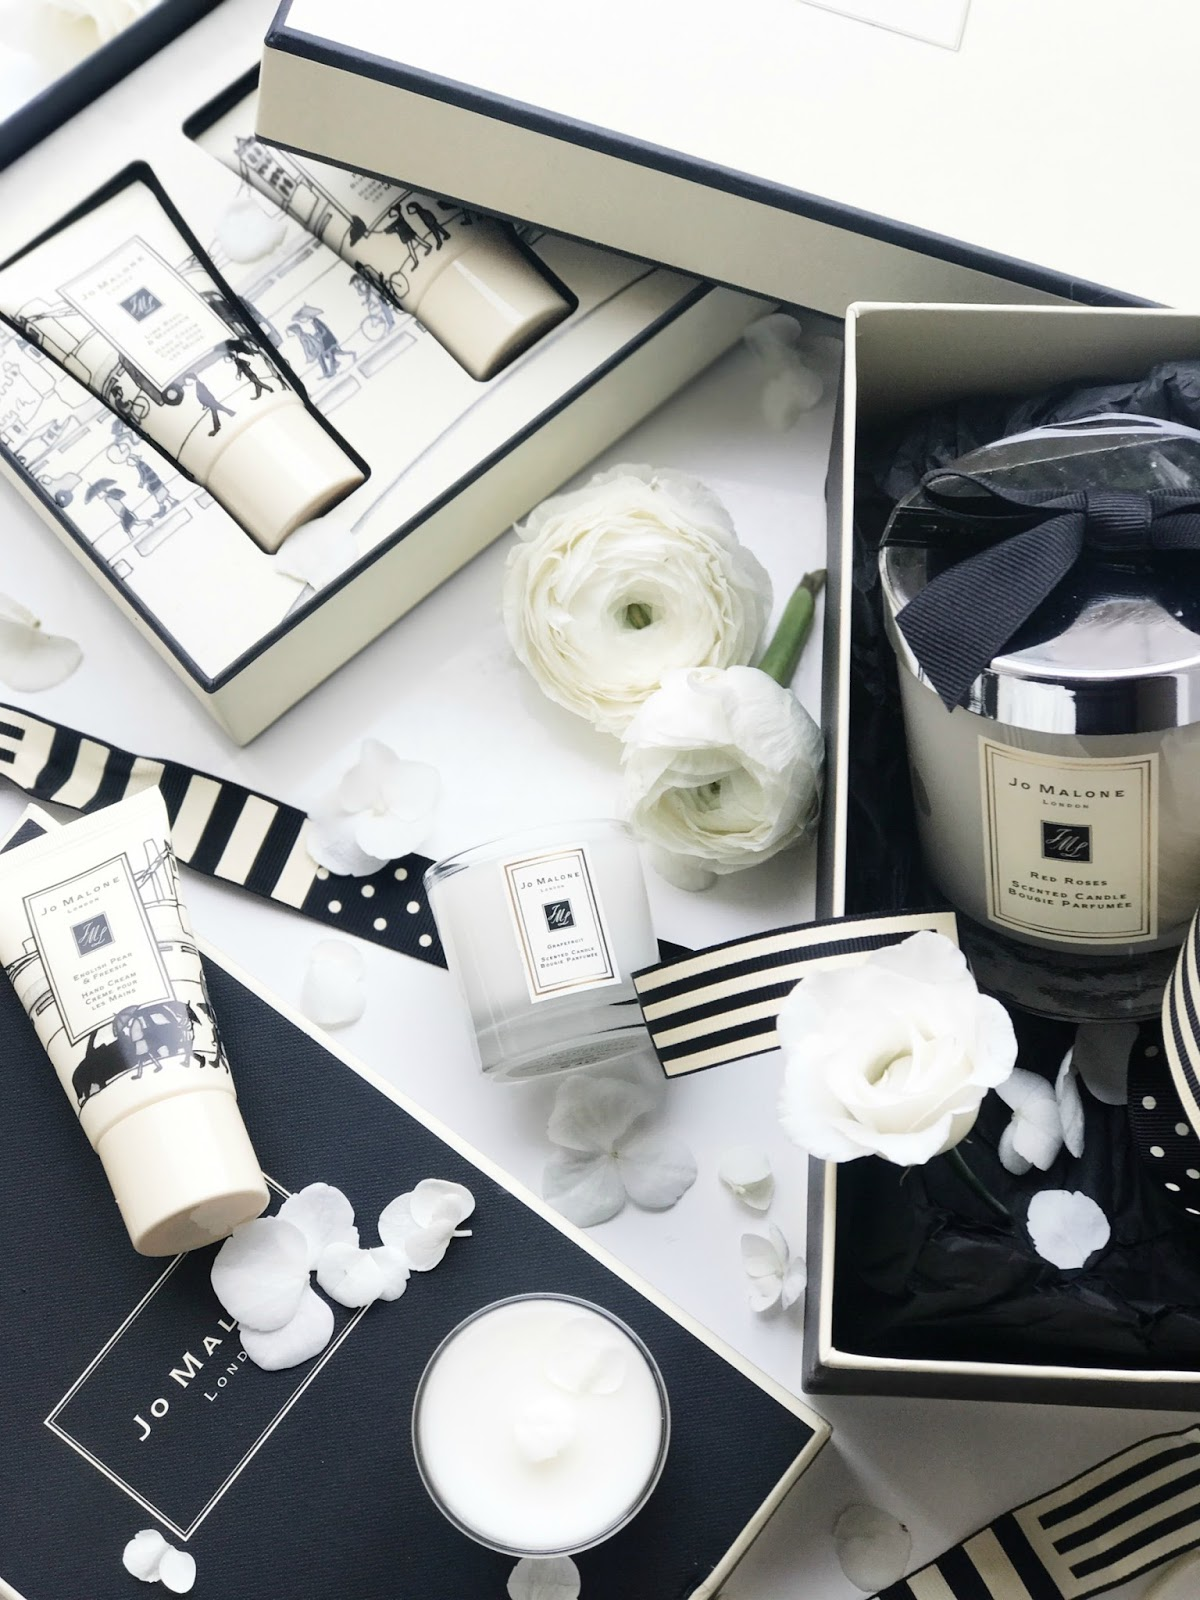 Limited Edition Jo Malone Hand Cream Collection London 2018